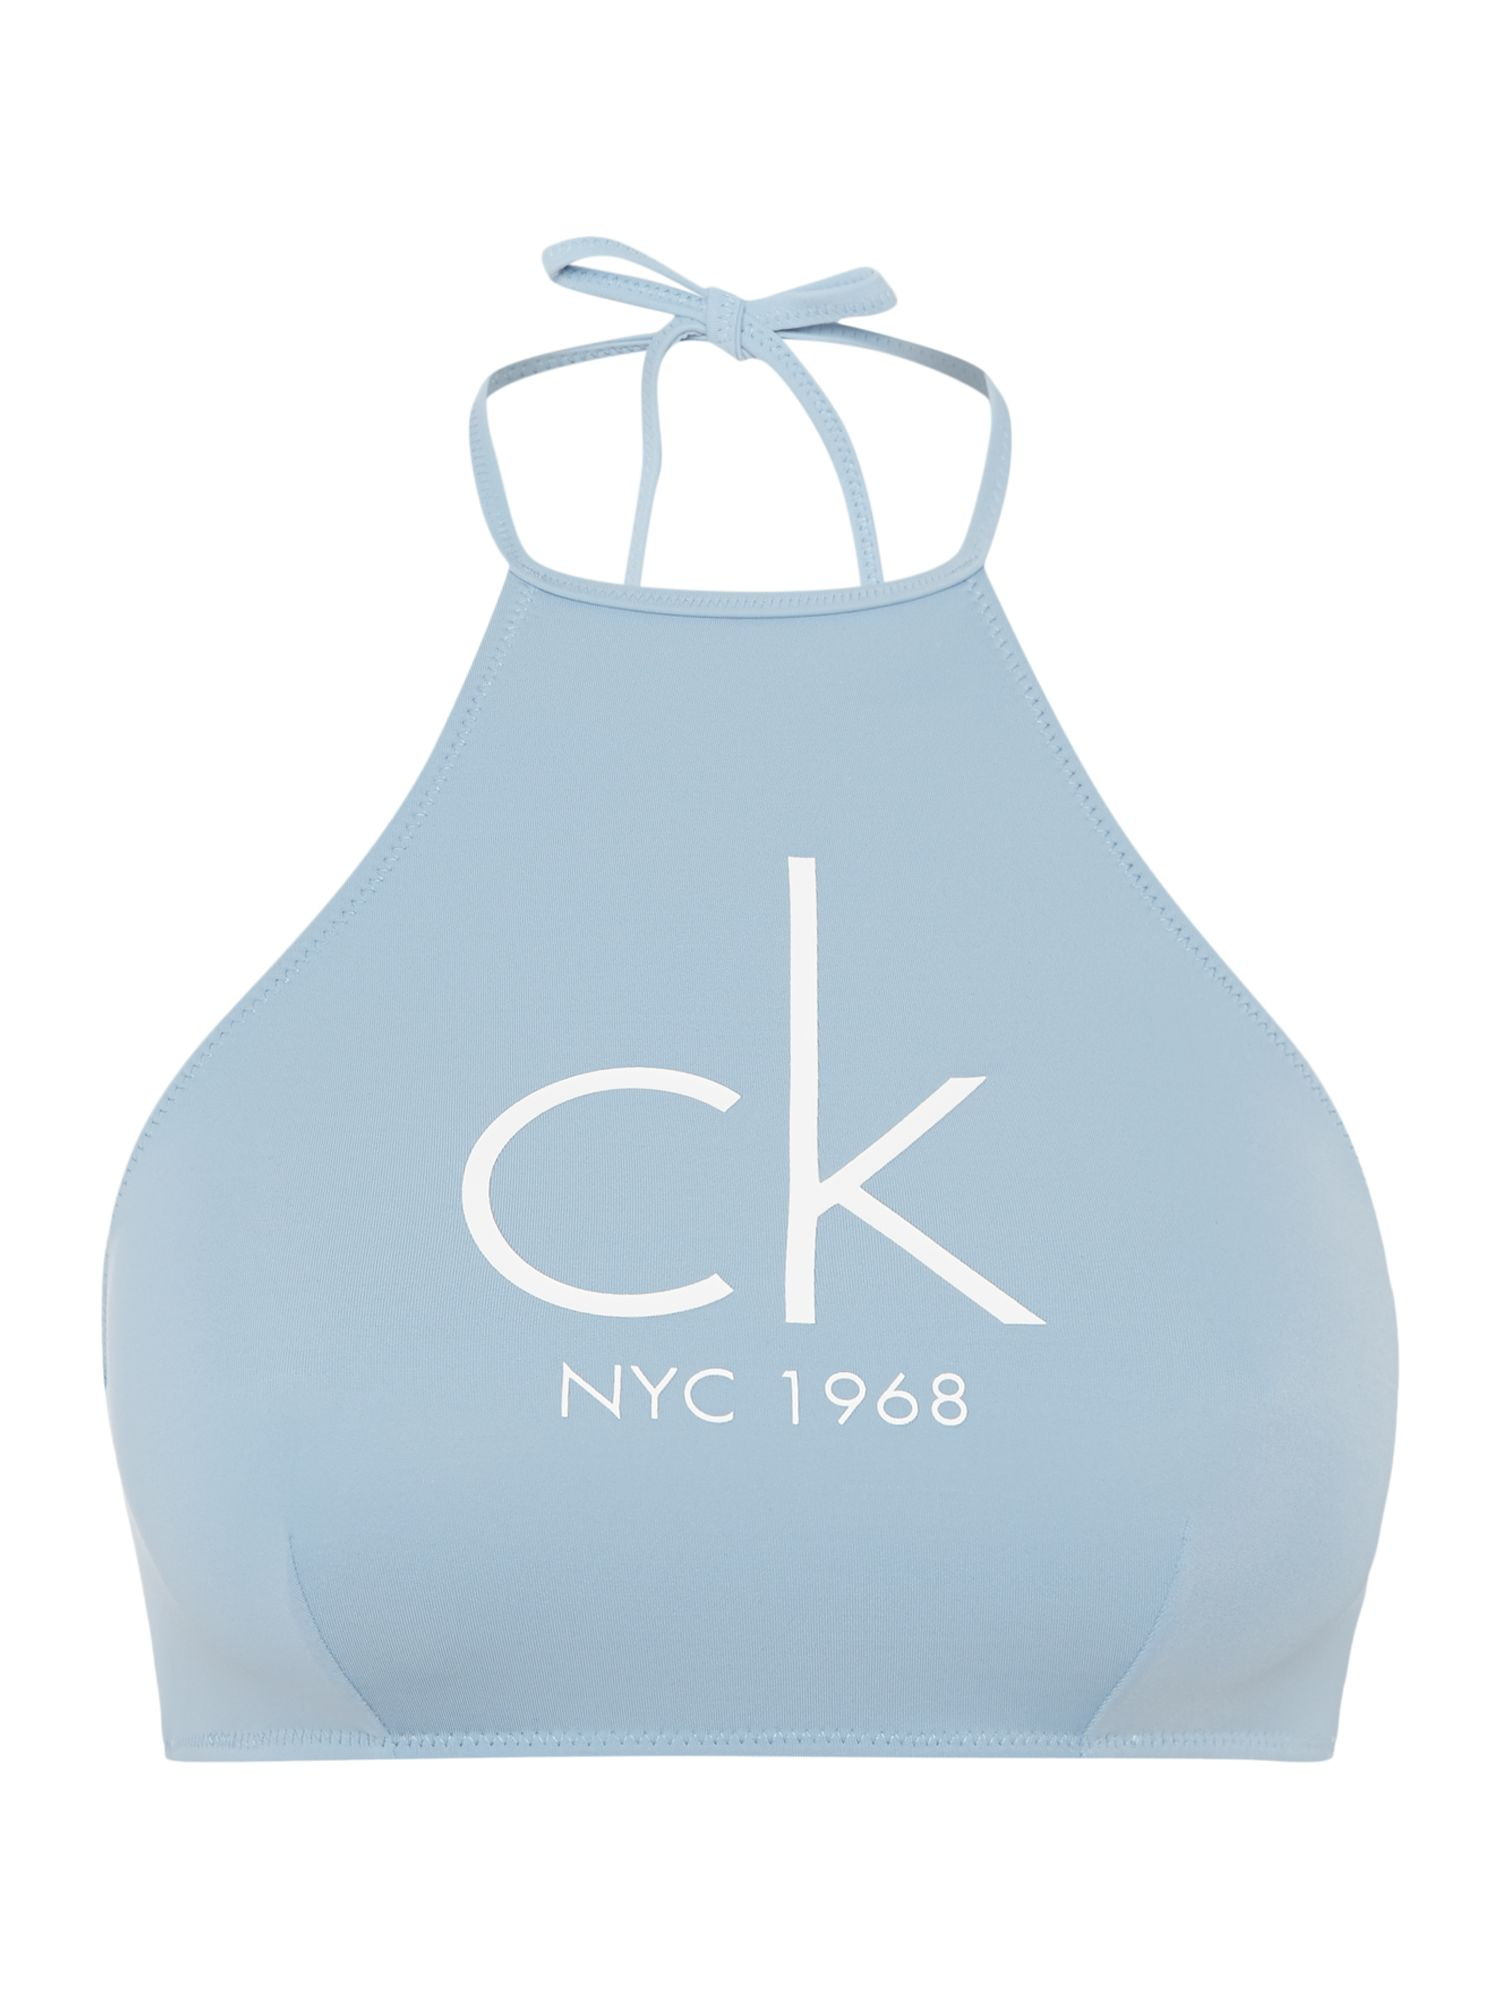 Calvin Klein Ck nyc high neck bikini crop top, Blue